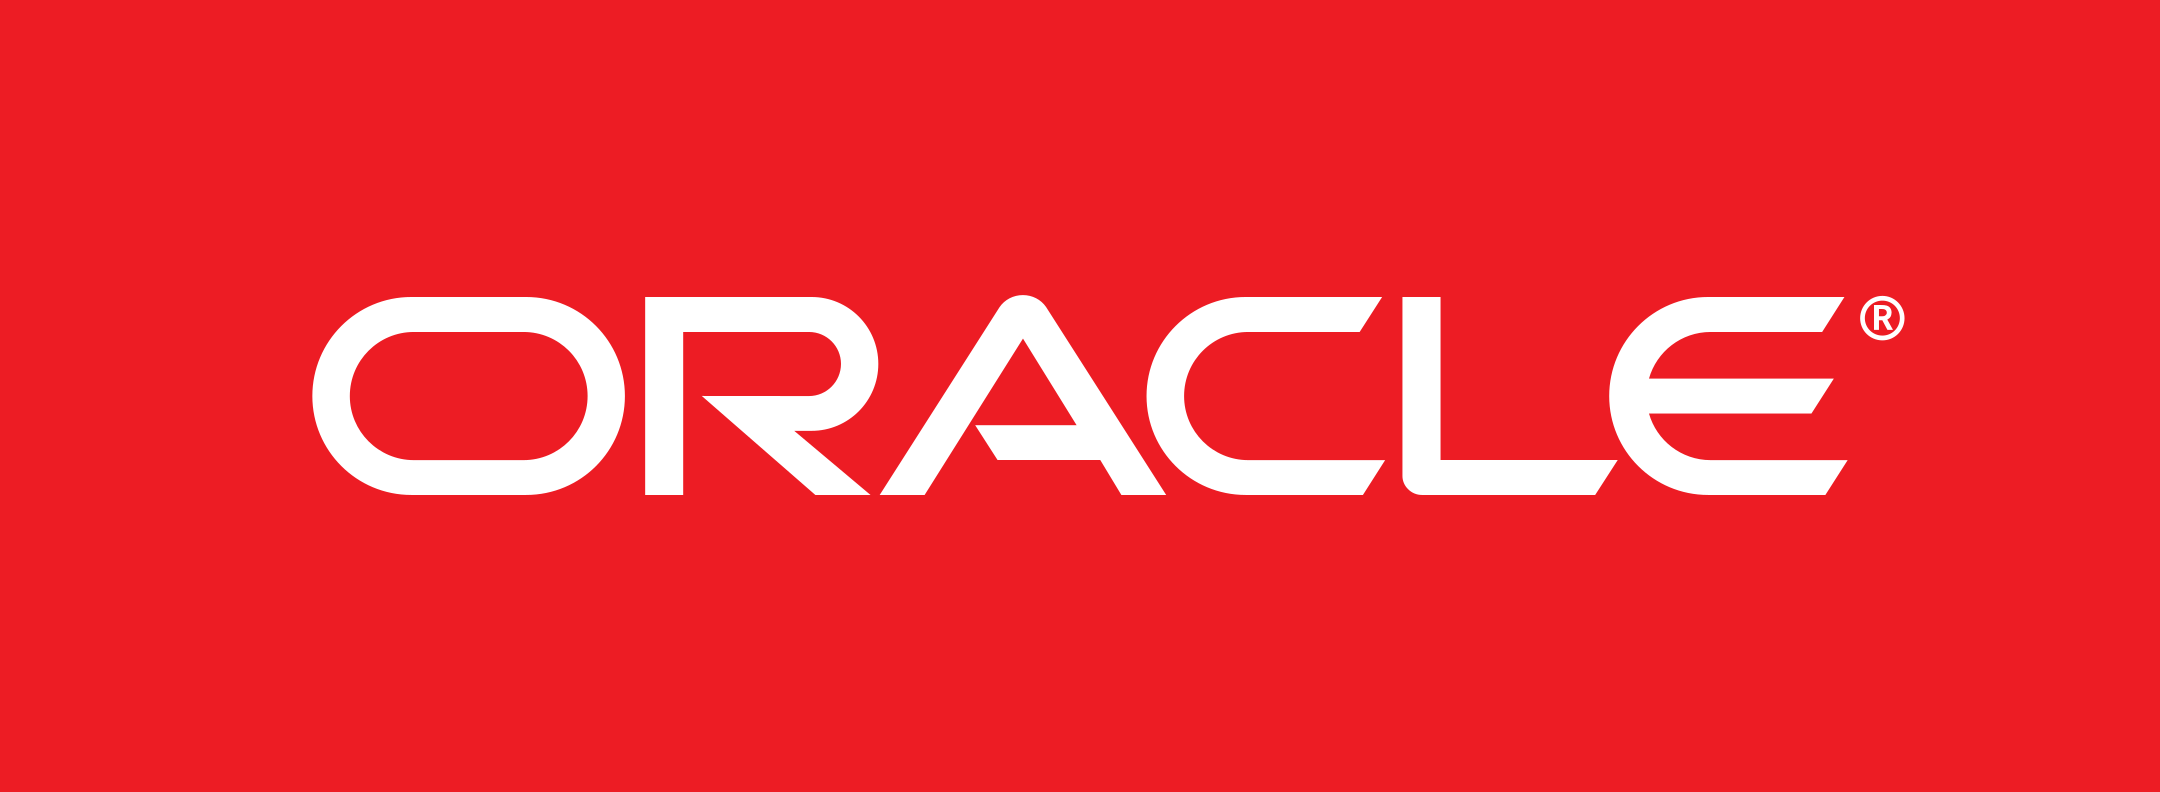 oracle logo 2 1 - Oracle Logo